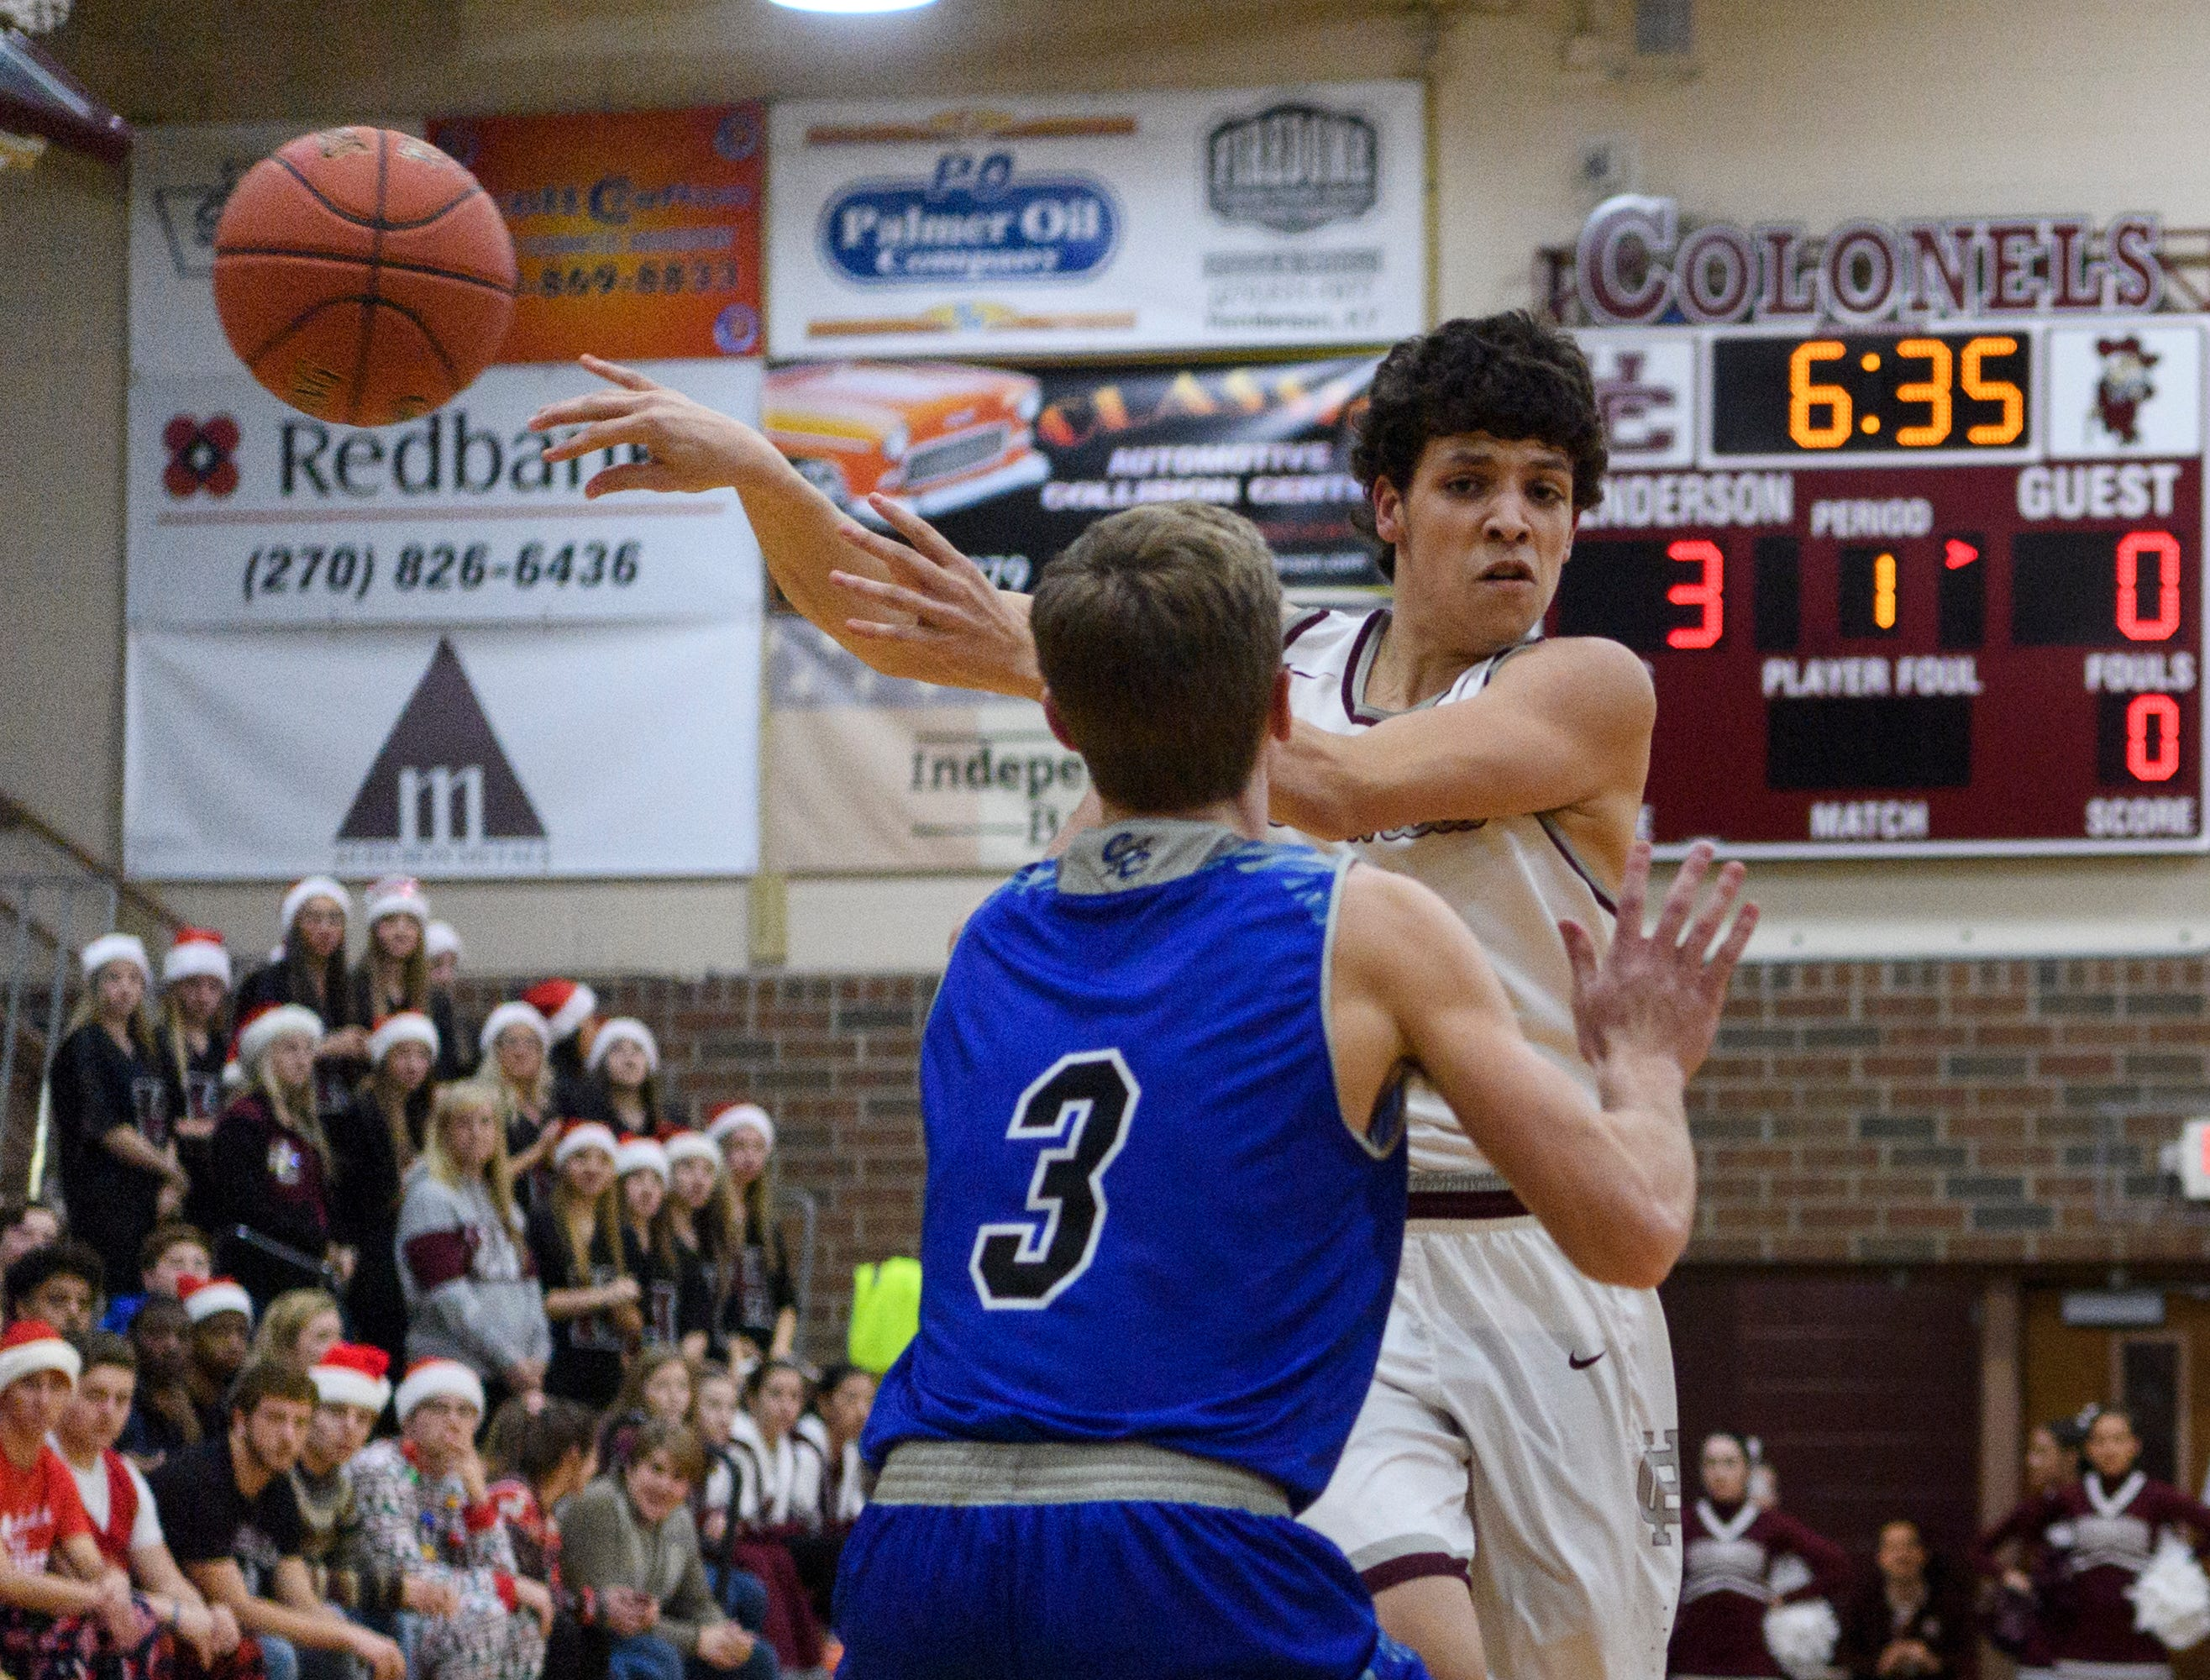 Henderson's Corey Stewart (1) passes the ball around Crittenden County's Sawyer Towery (3) during the first quarter at Henderson County High School in Henderson, Ky., Tuesday, Dec. 18, 2018. The Colonels defeated the Rockets 88-52.